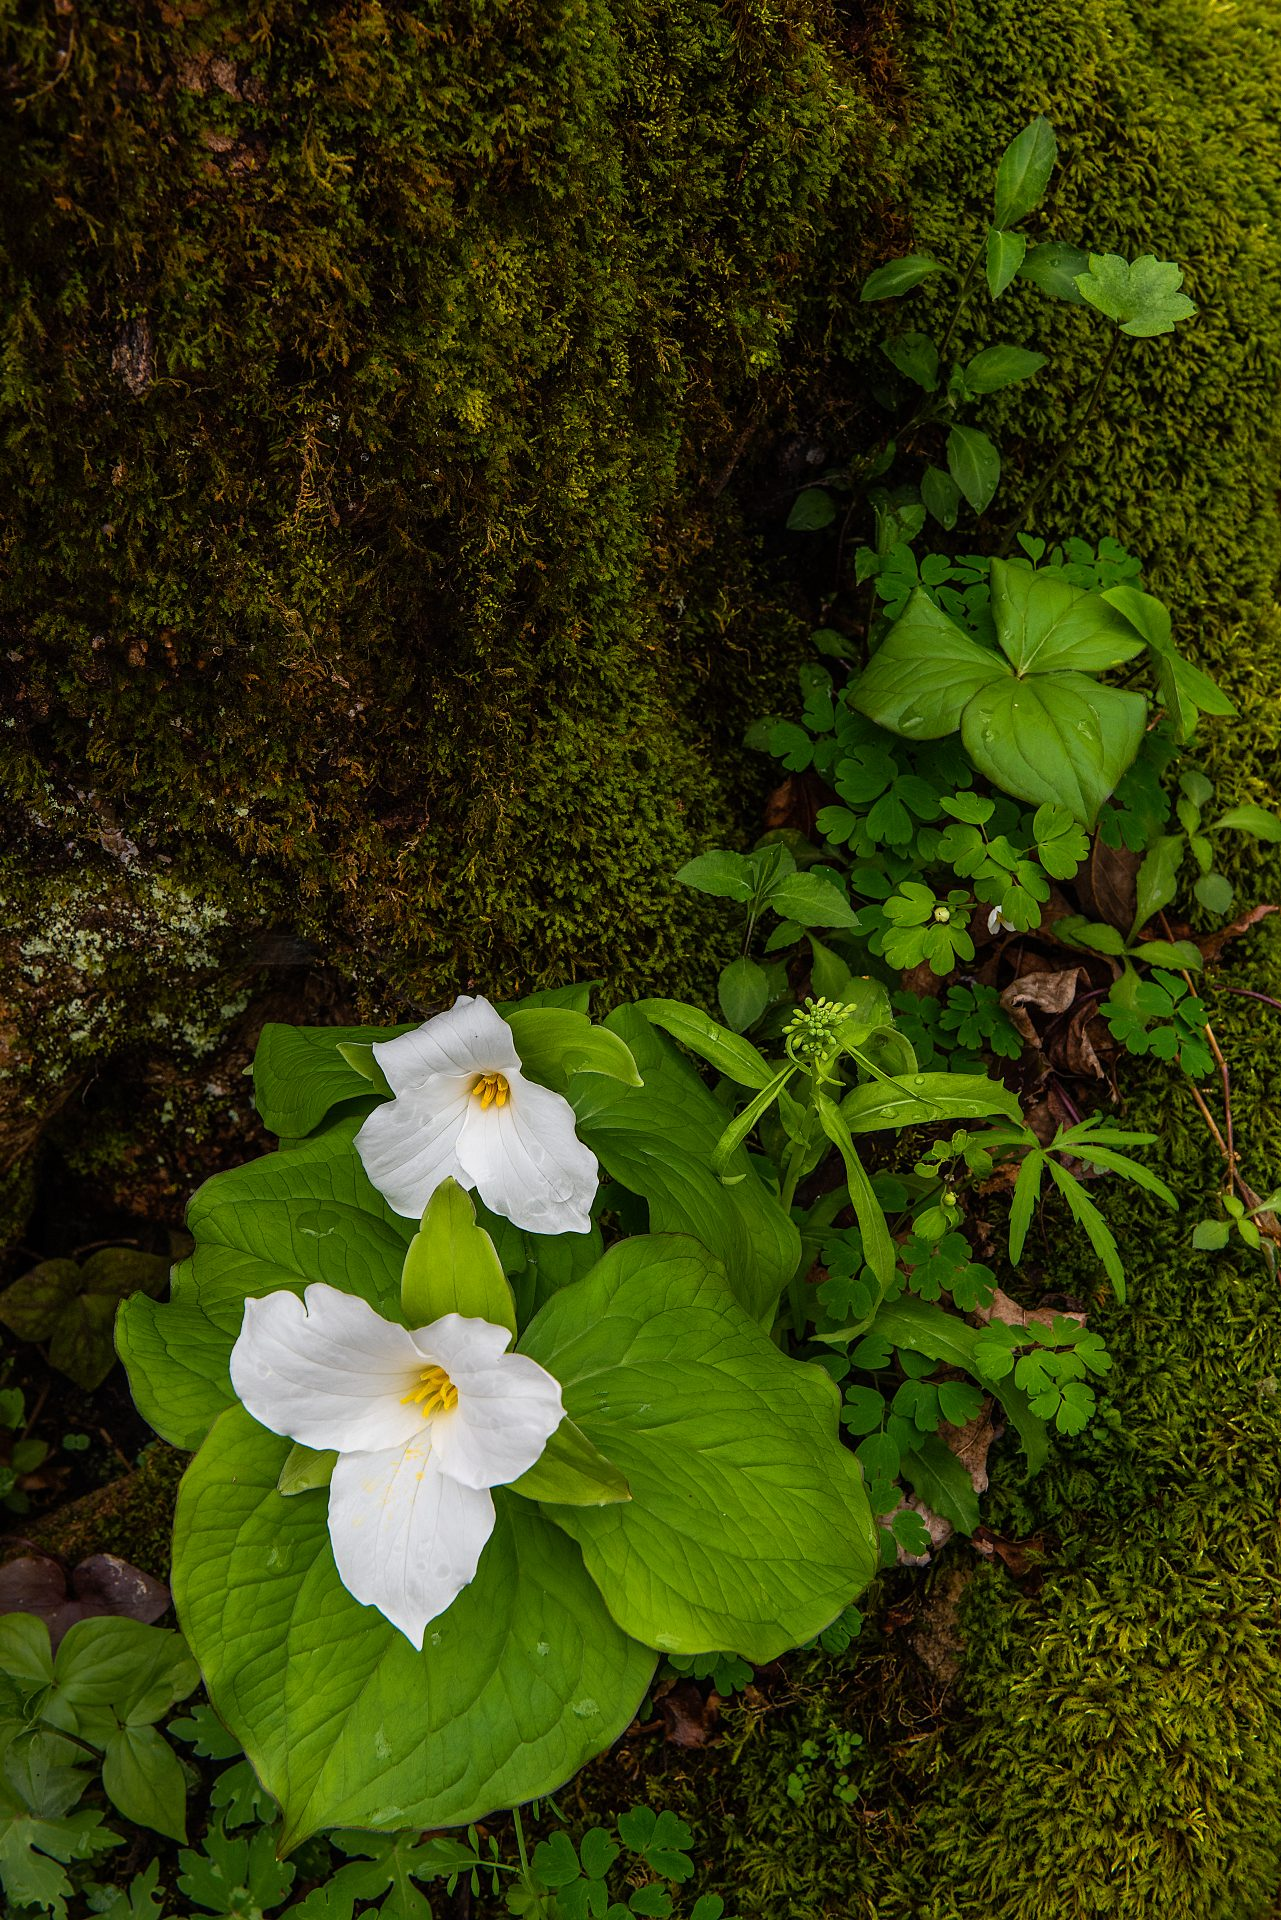 Trillium and Moss Photo Courtesy of Tom Croce Photography